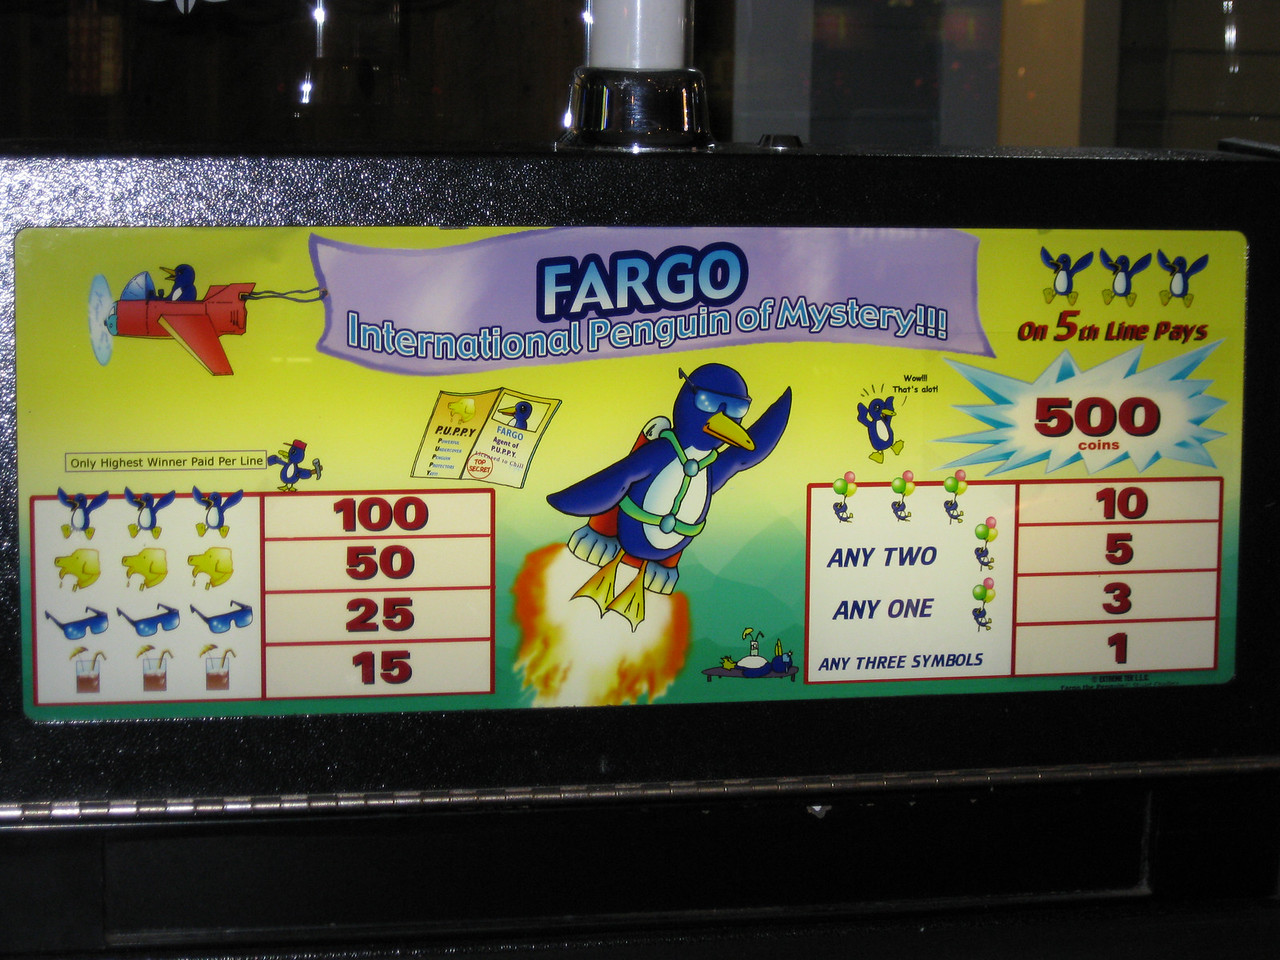 Fargo, International Penguin of Mystery, at the Jackpot Casino.